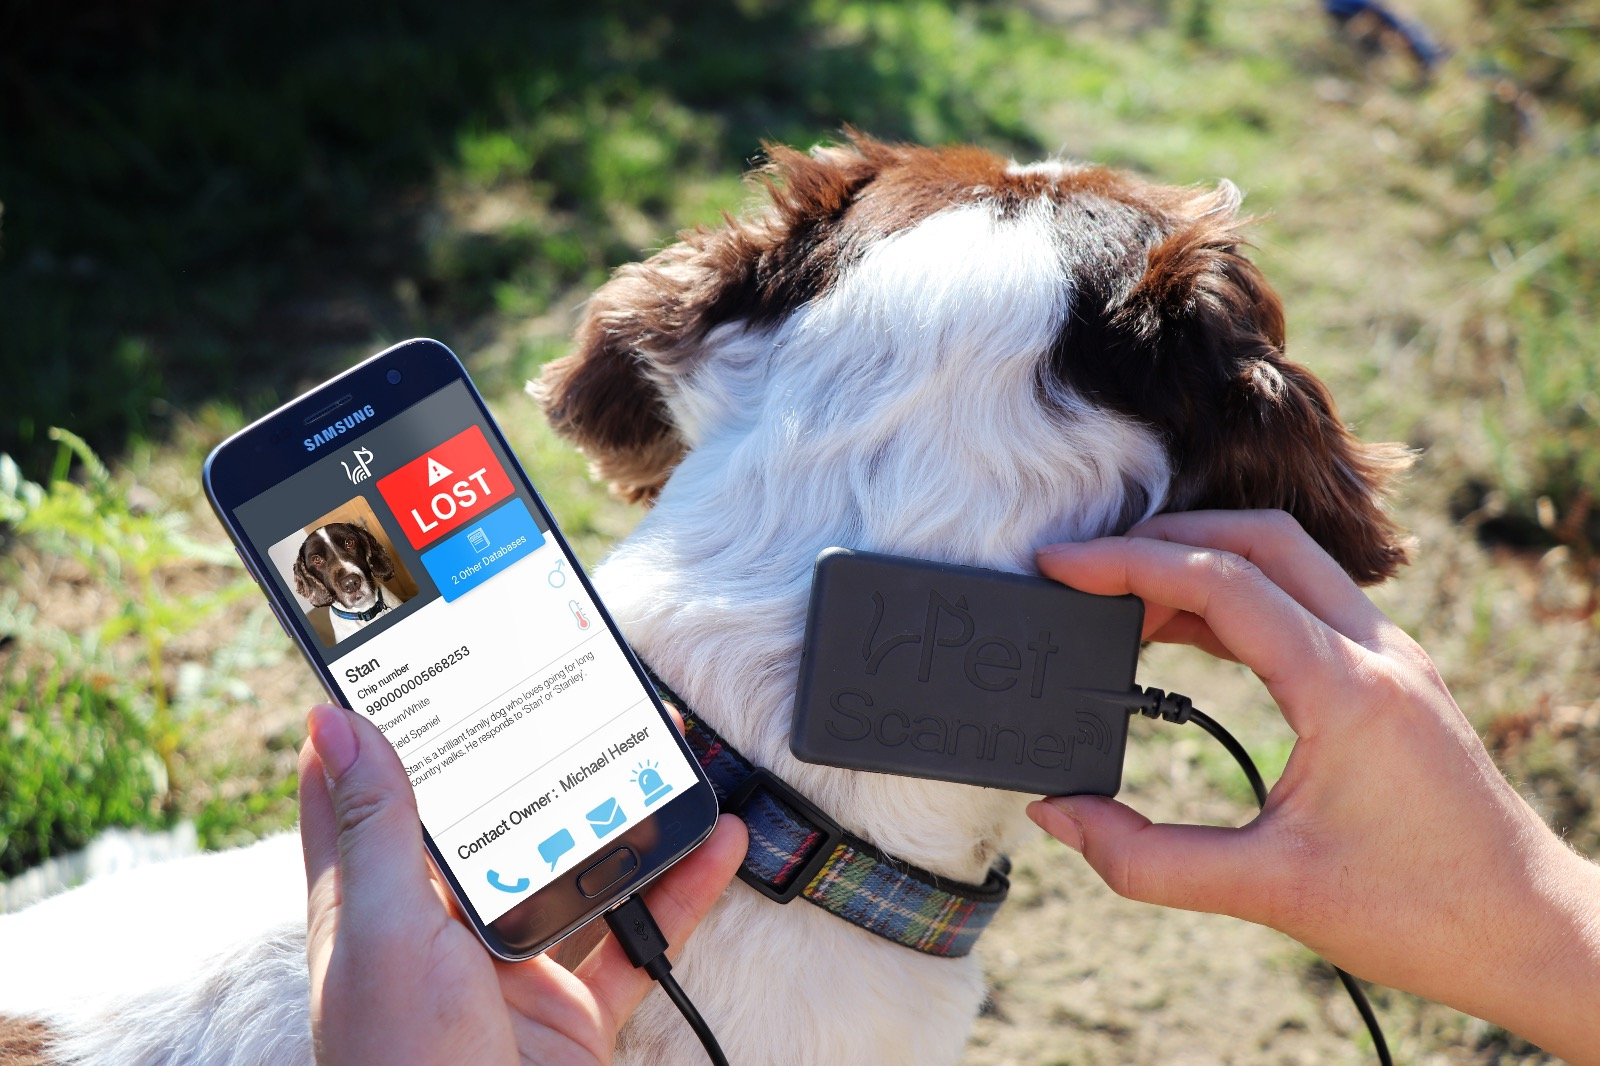 Image of PetScanner reader and app in use on dog